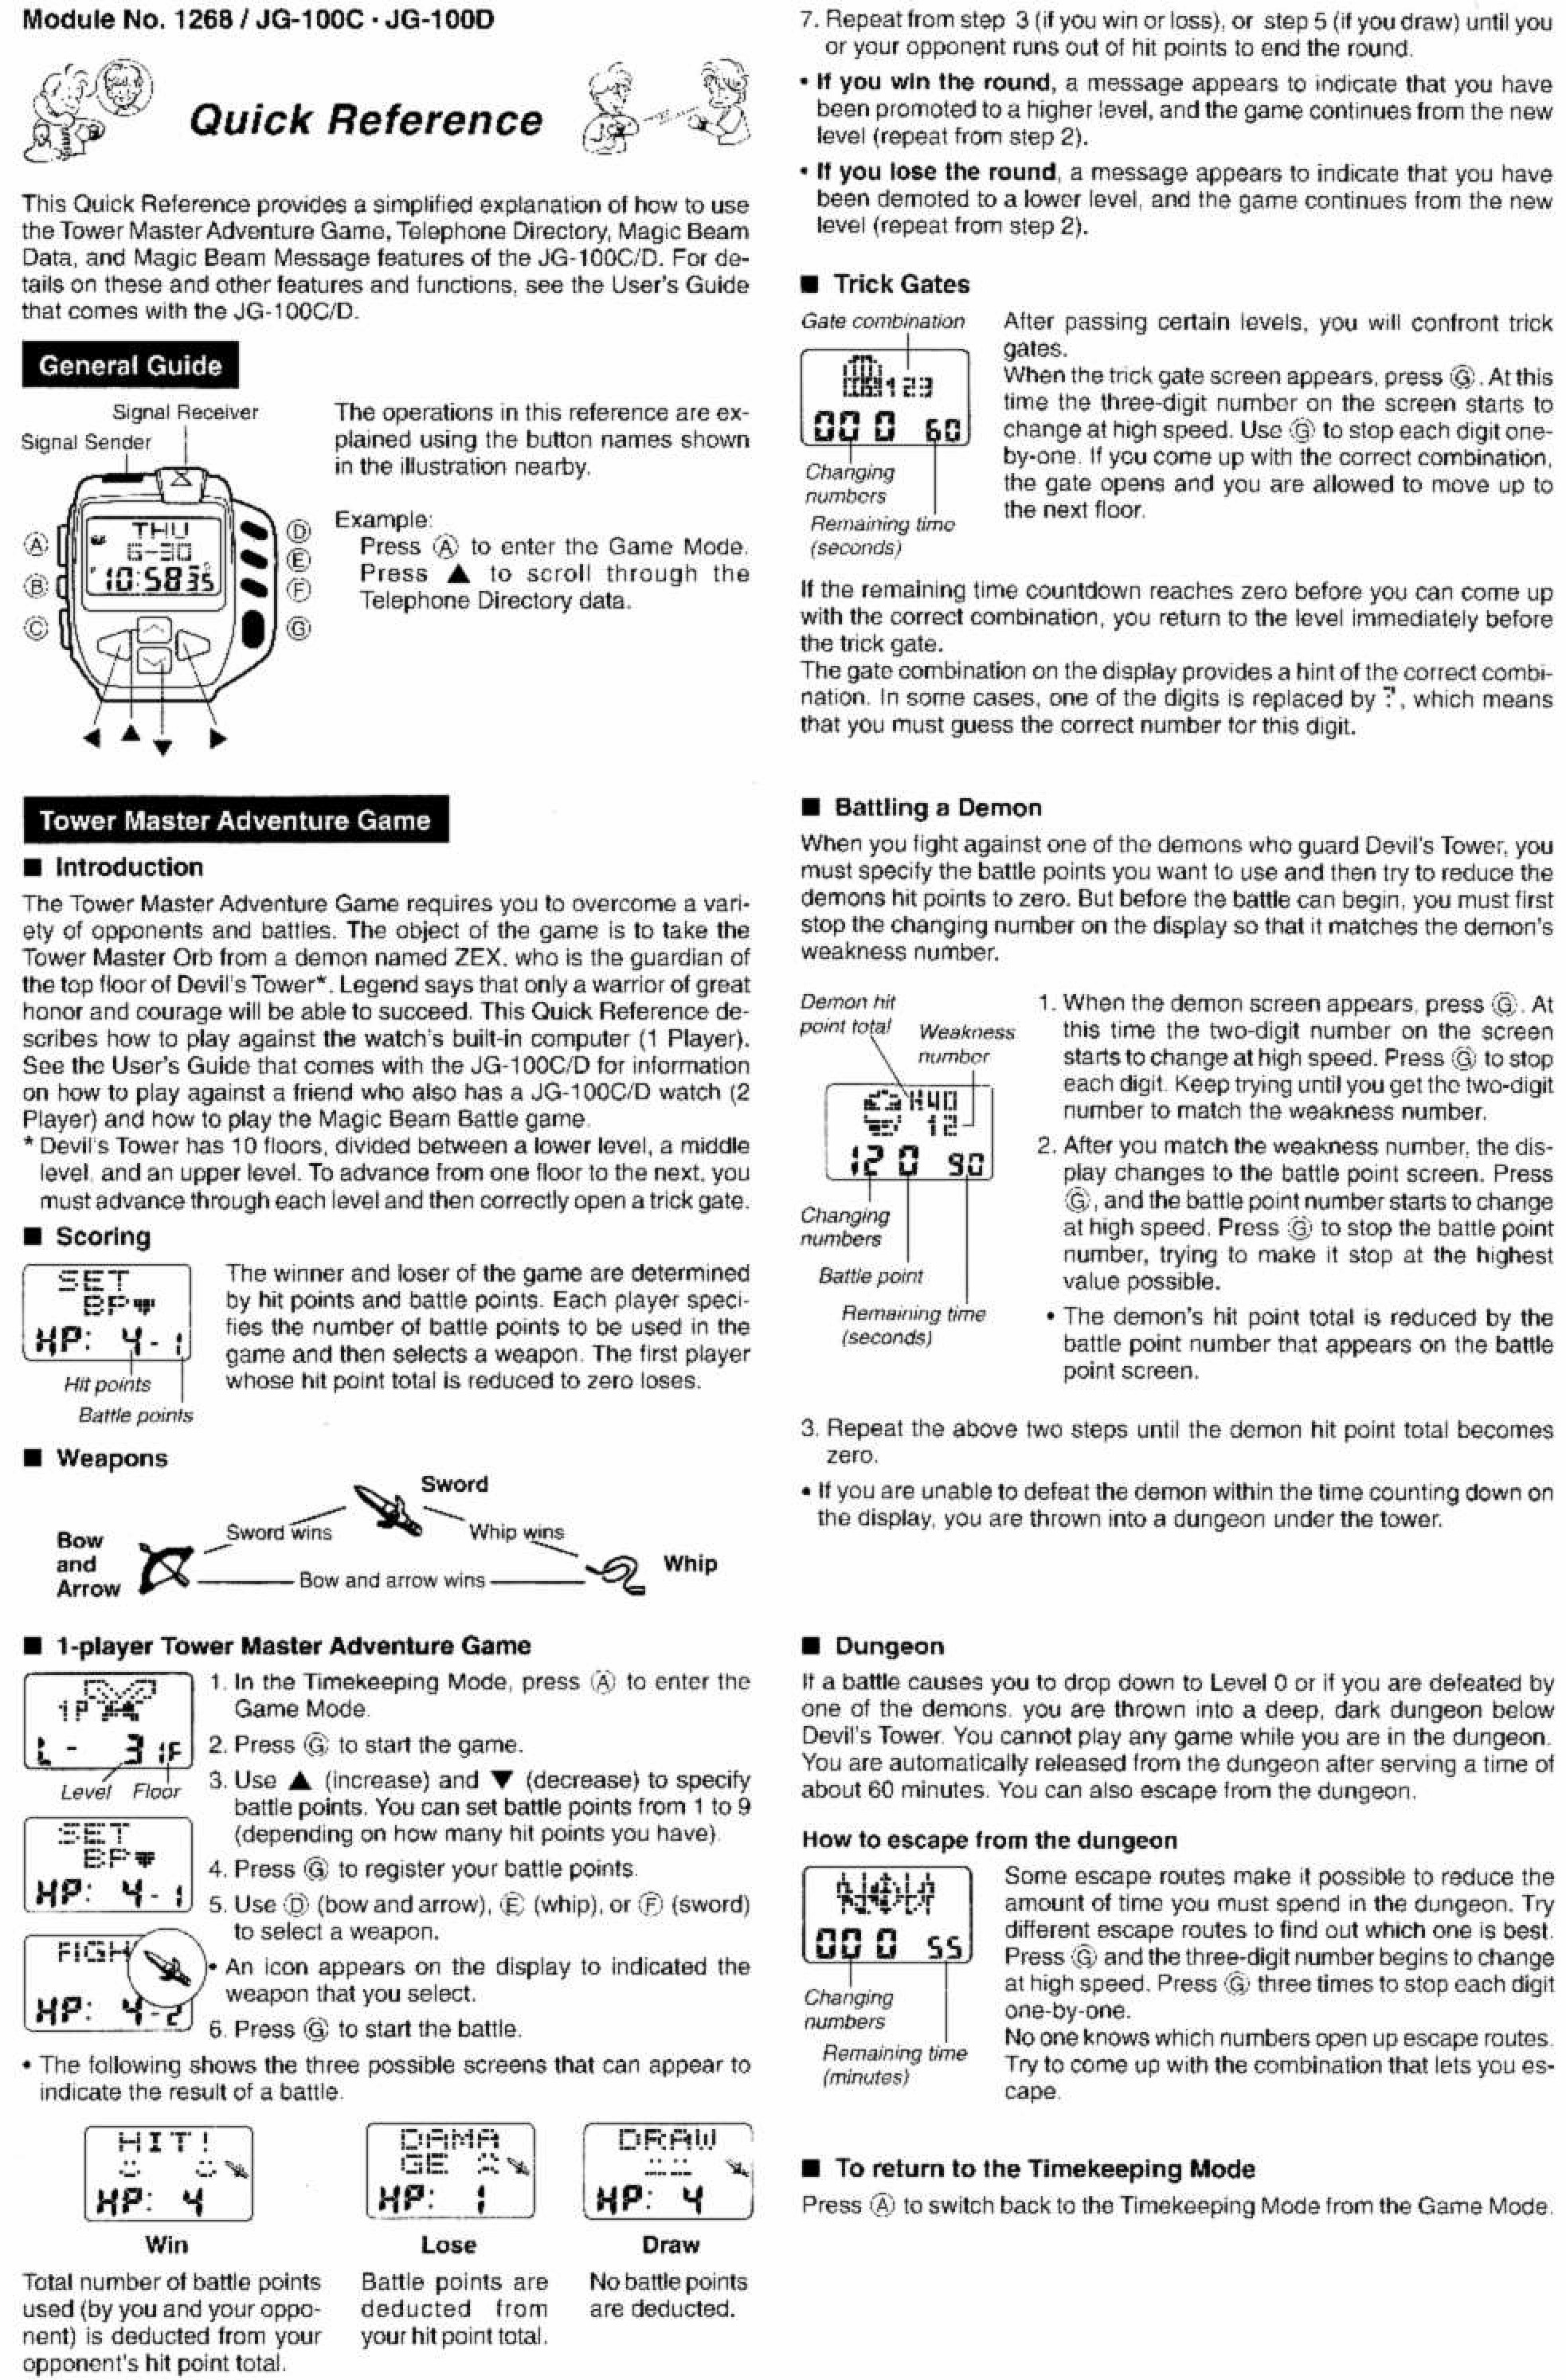 User Guide For Numbers user guide